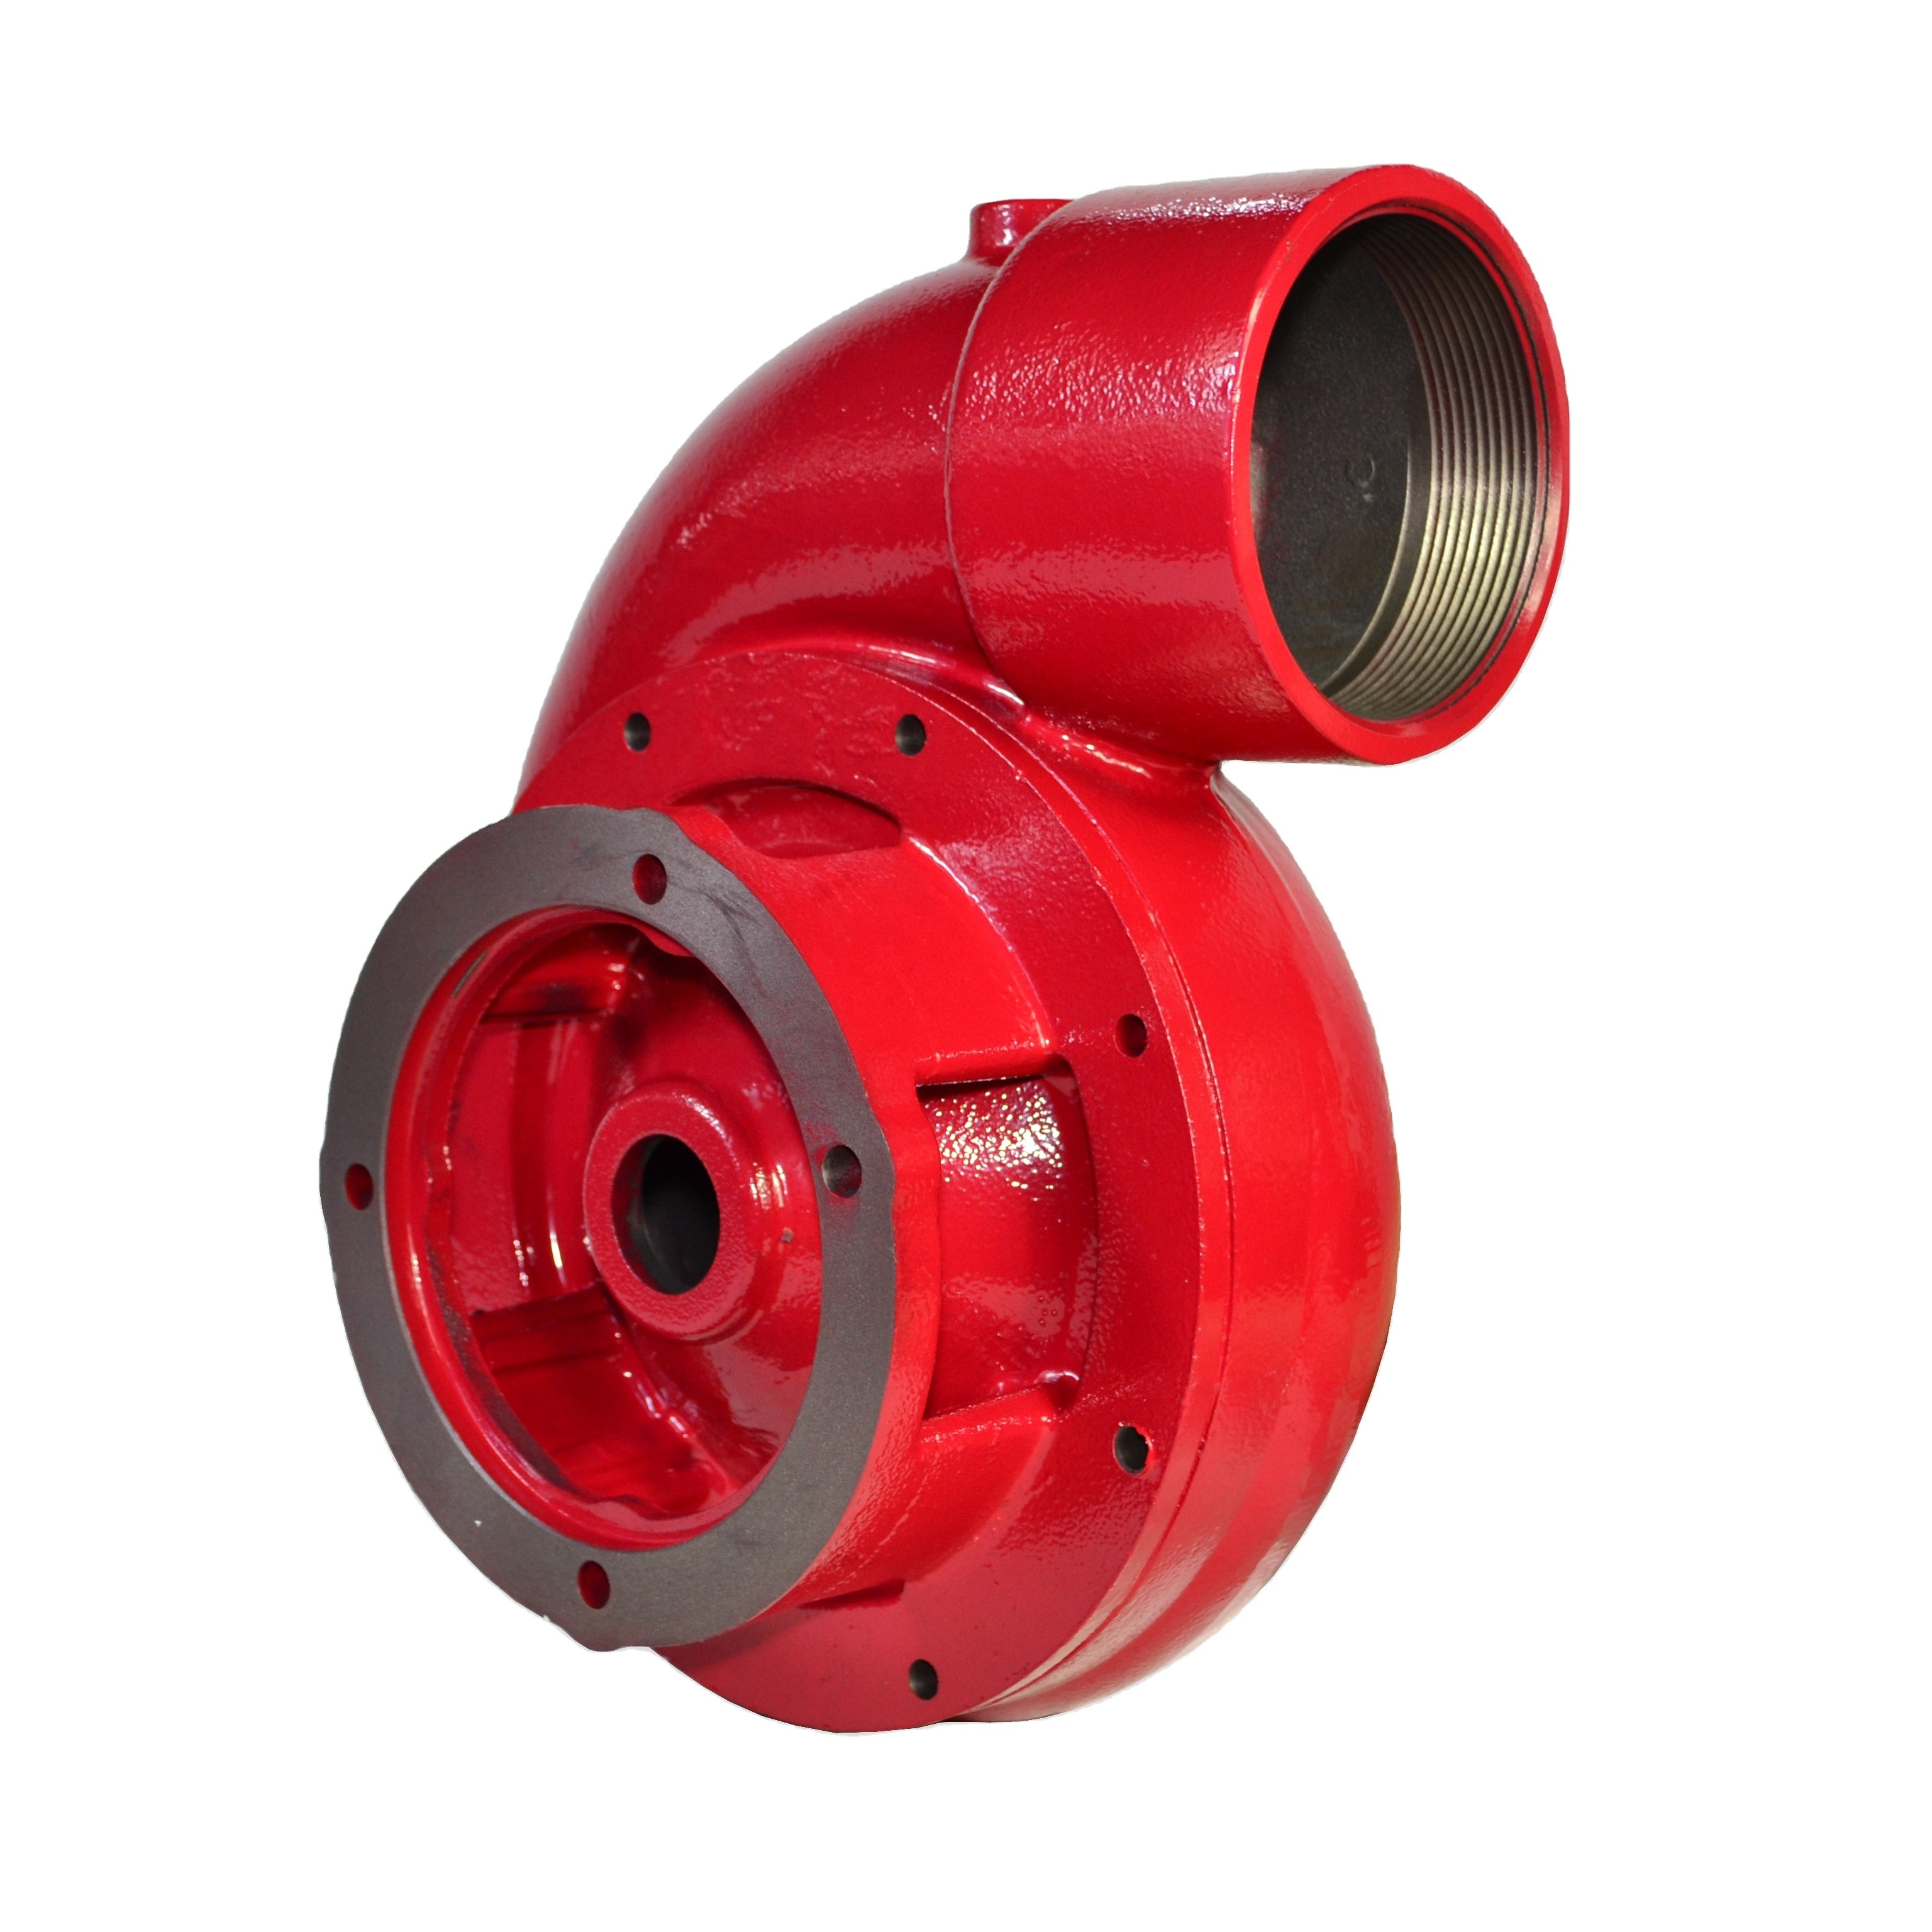 4 Inch Self Priming Centrifugal Cast Iron High Pressure Water Pump enlarge